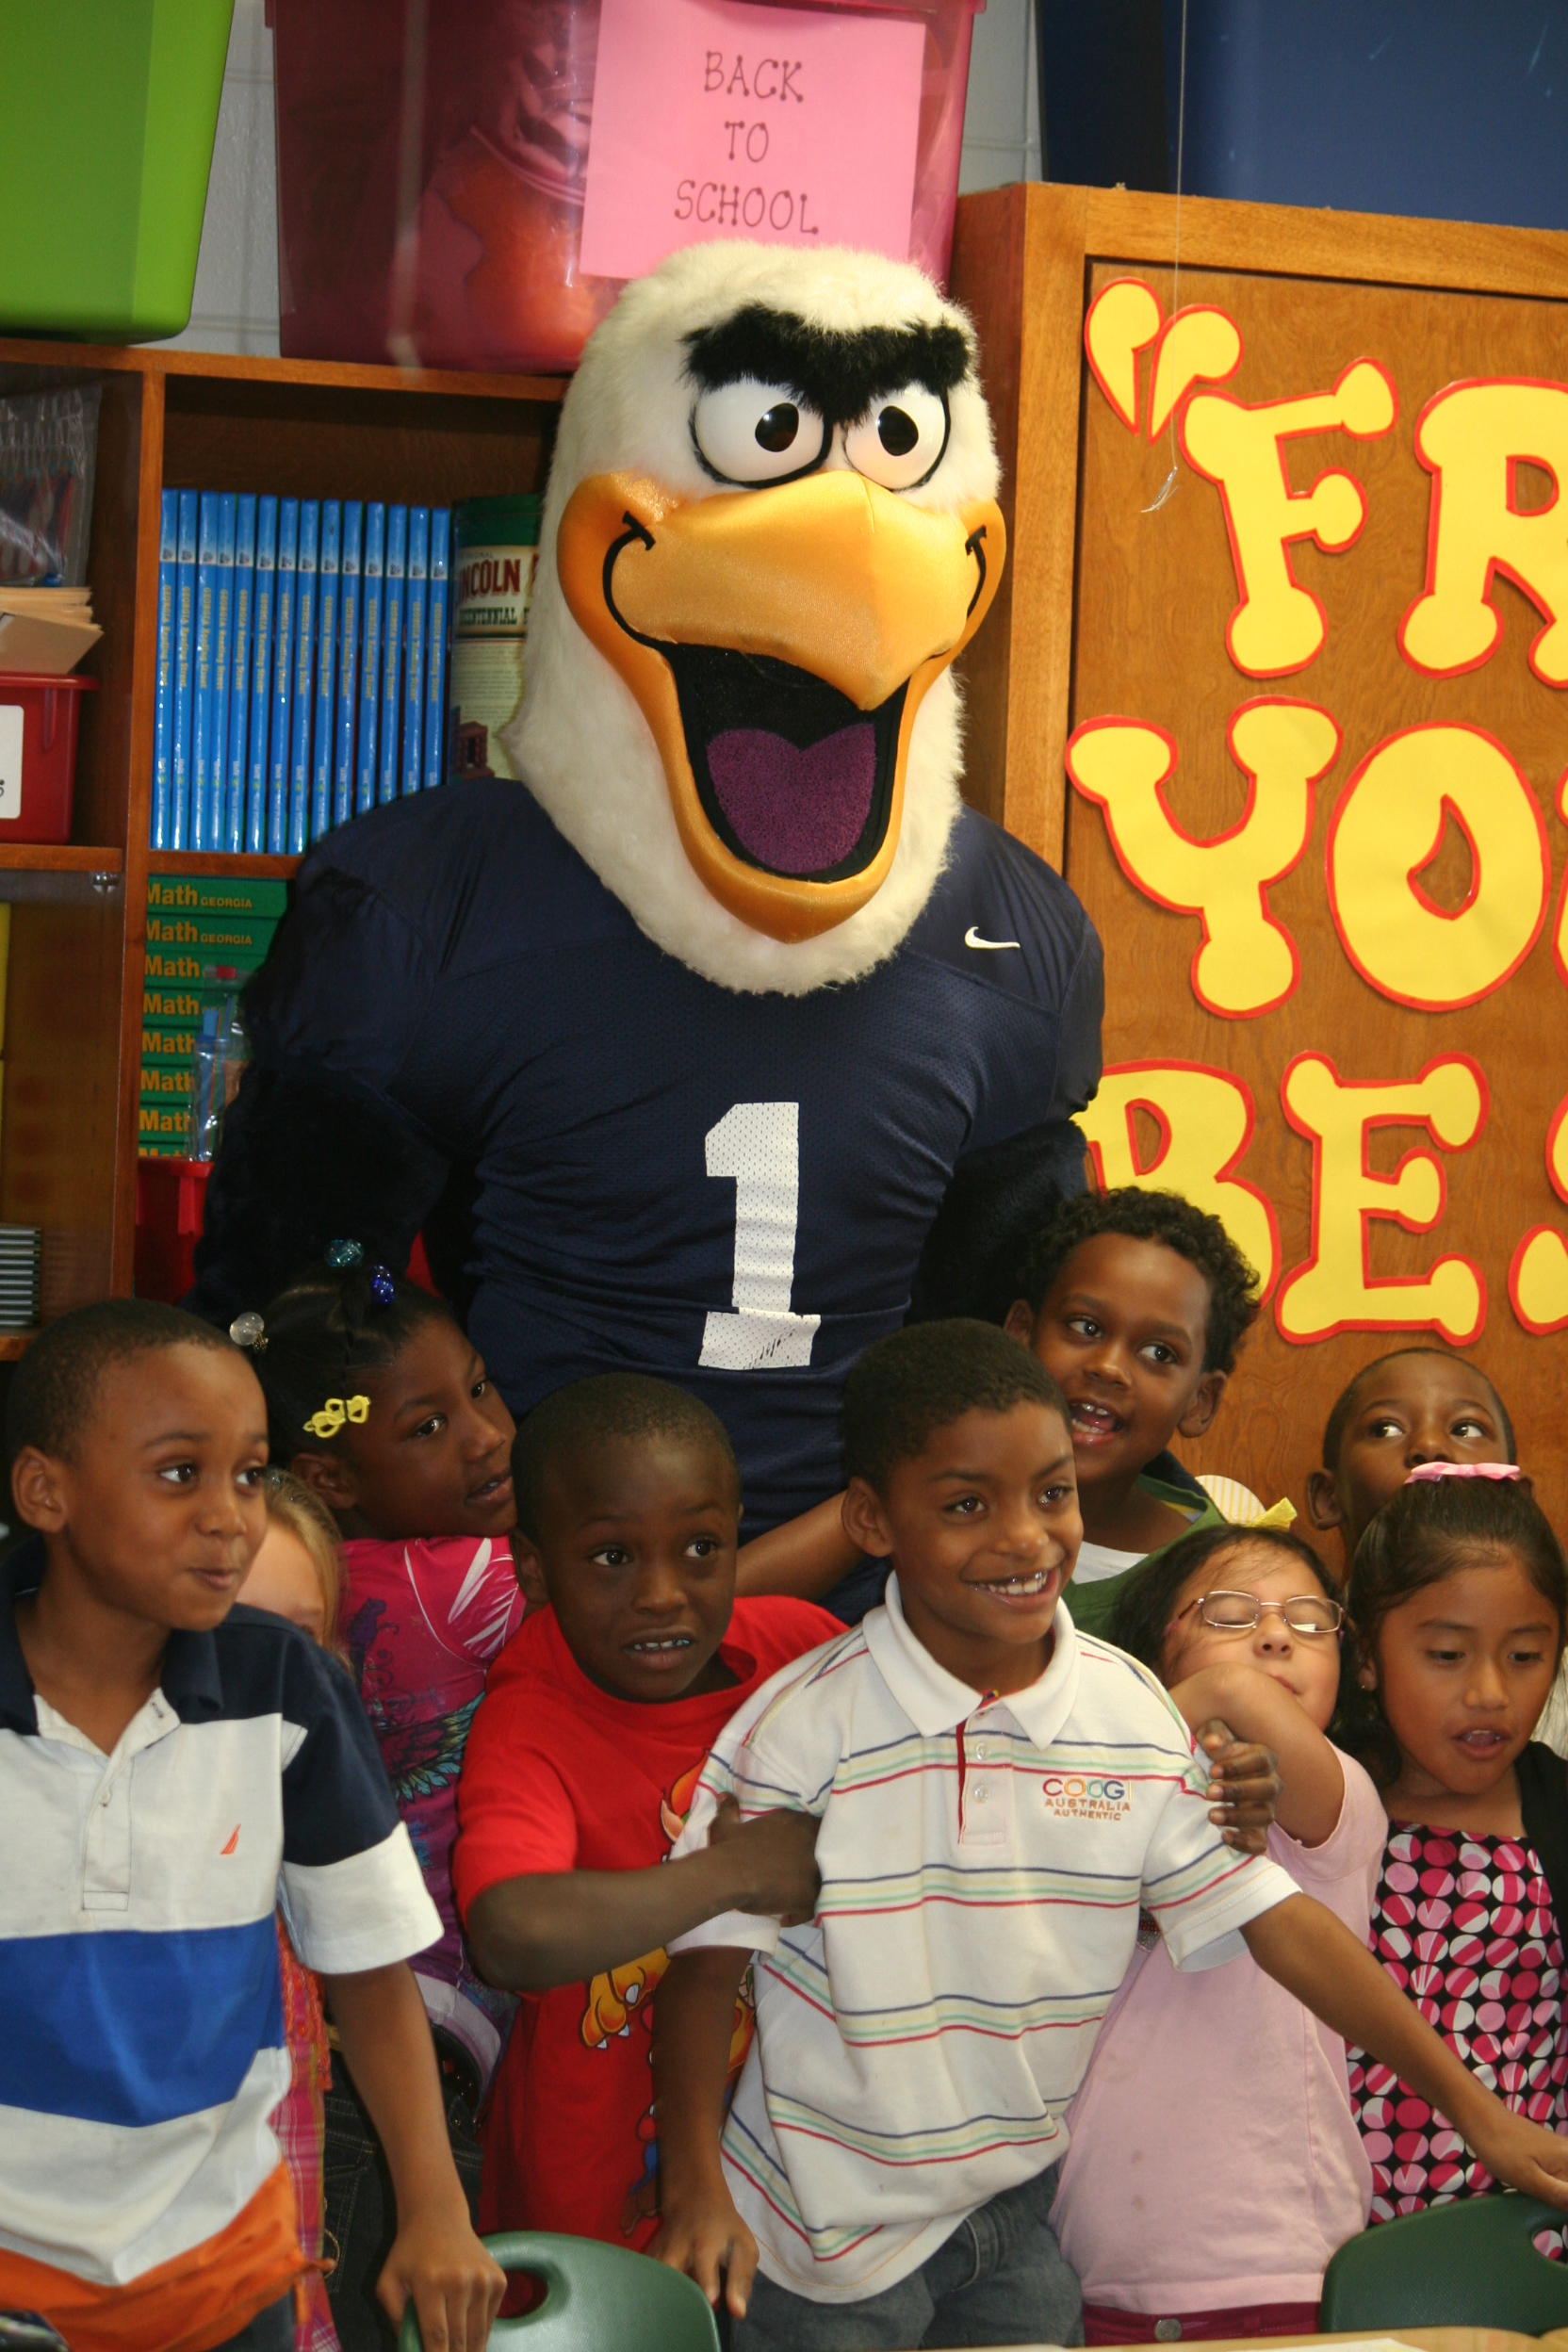 The Day Georgia Southern Eagles came to JPB